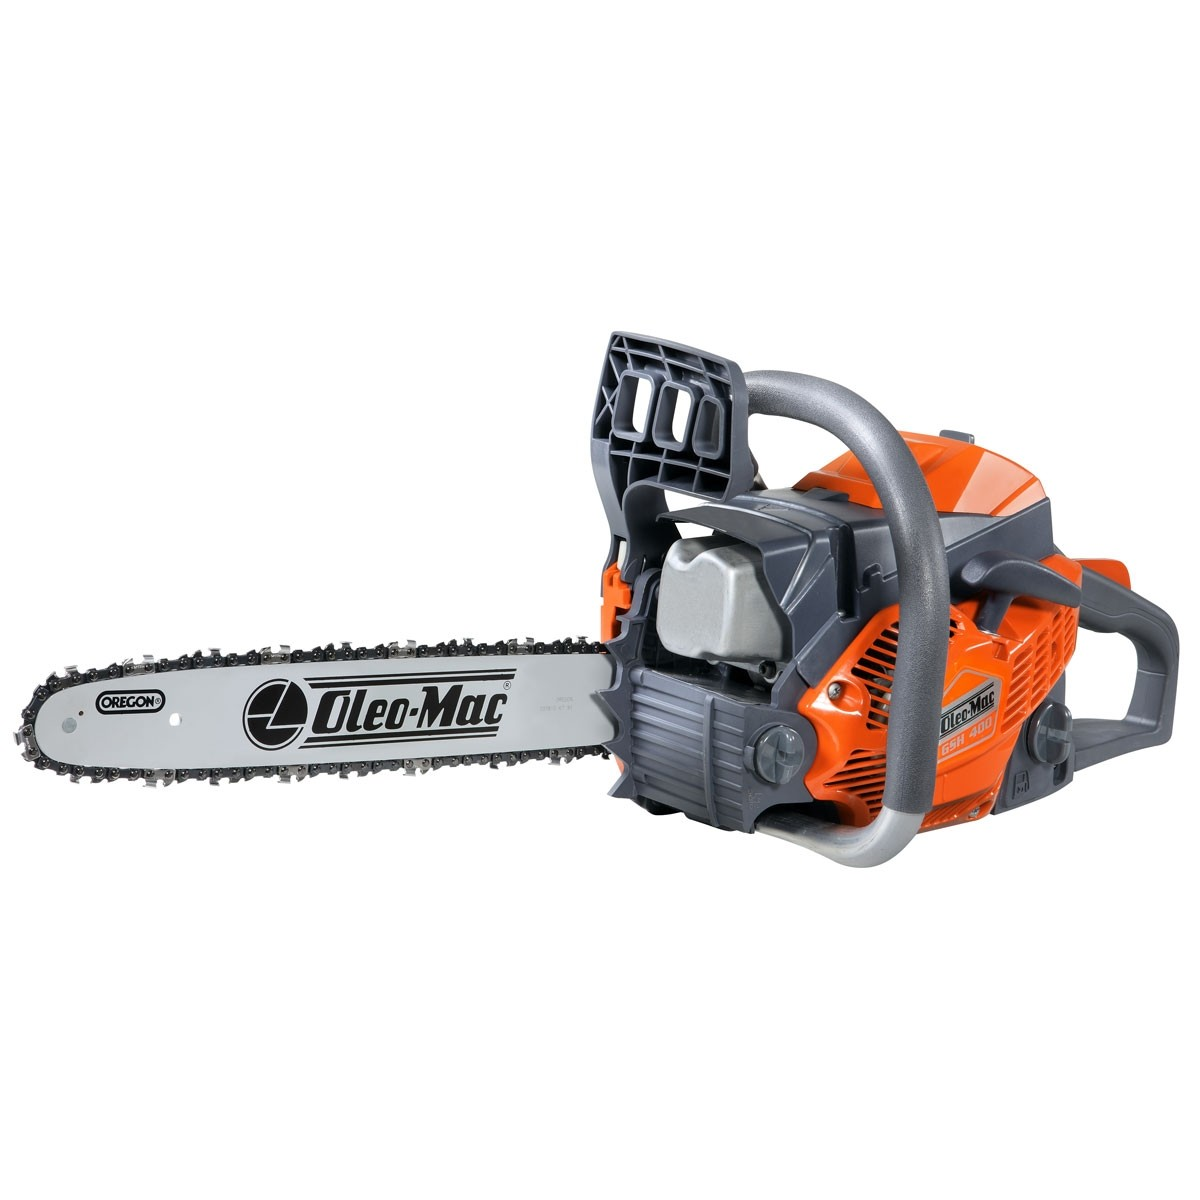 Oleo-Mac GSH 400 Petrol Chainsaw H Series (Chainsaws – Petrol)Back Reset Delete Duplicate Save Save and Continue Edit